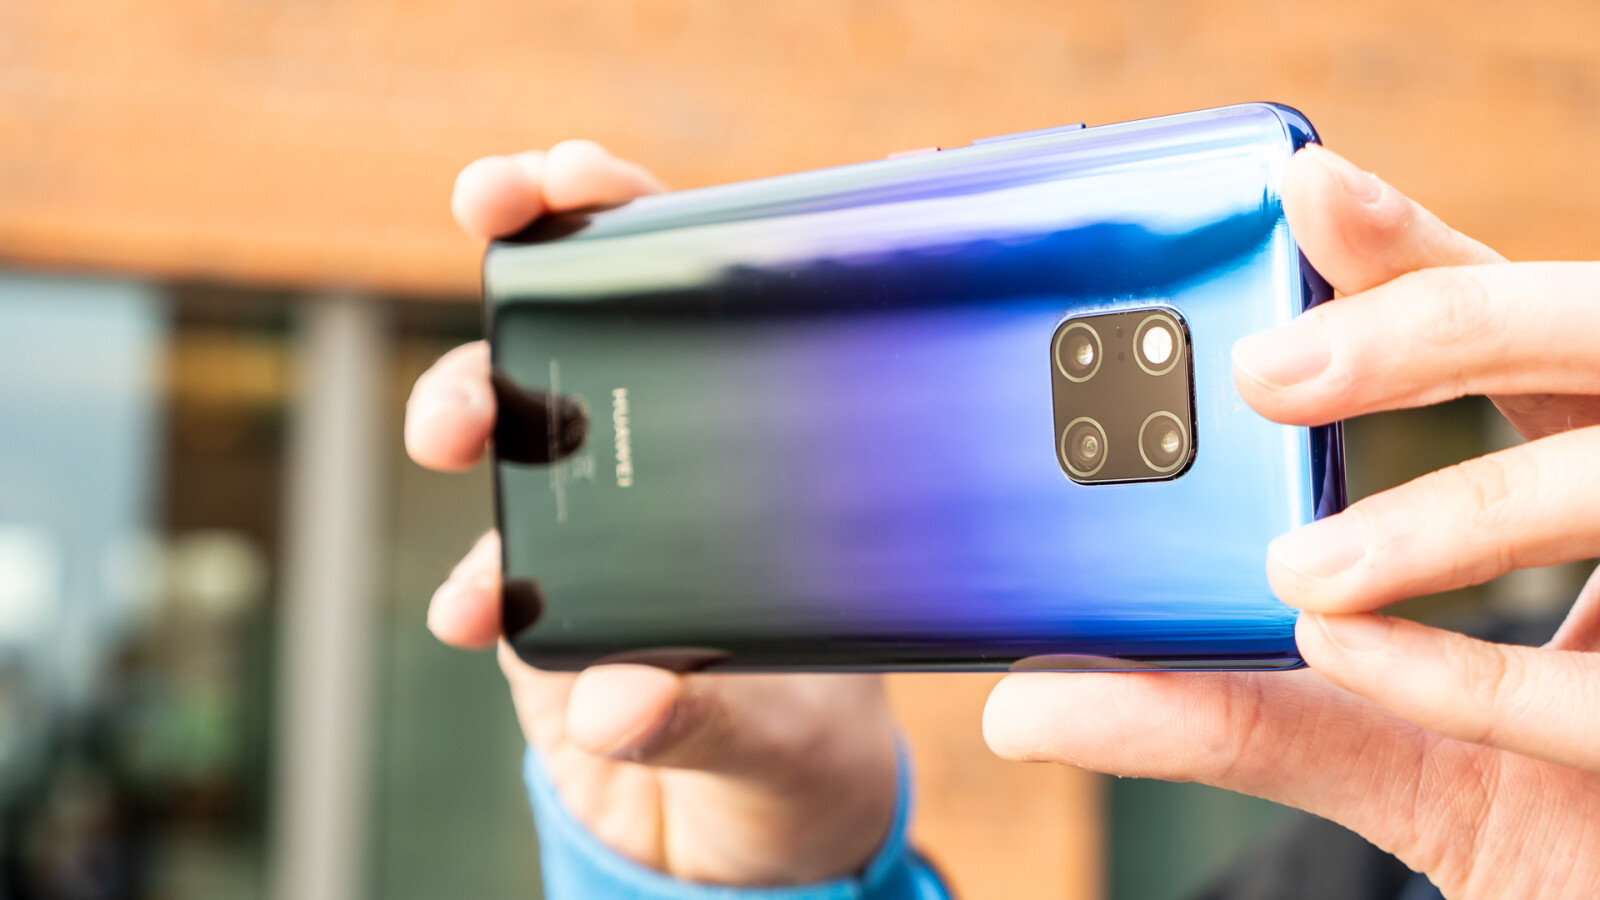 huawei mate 20 pro im test mit video traum handy f r. Black Bedroom Furniture Sets. Home Design Ideas